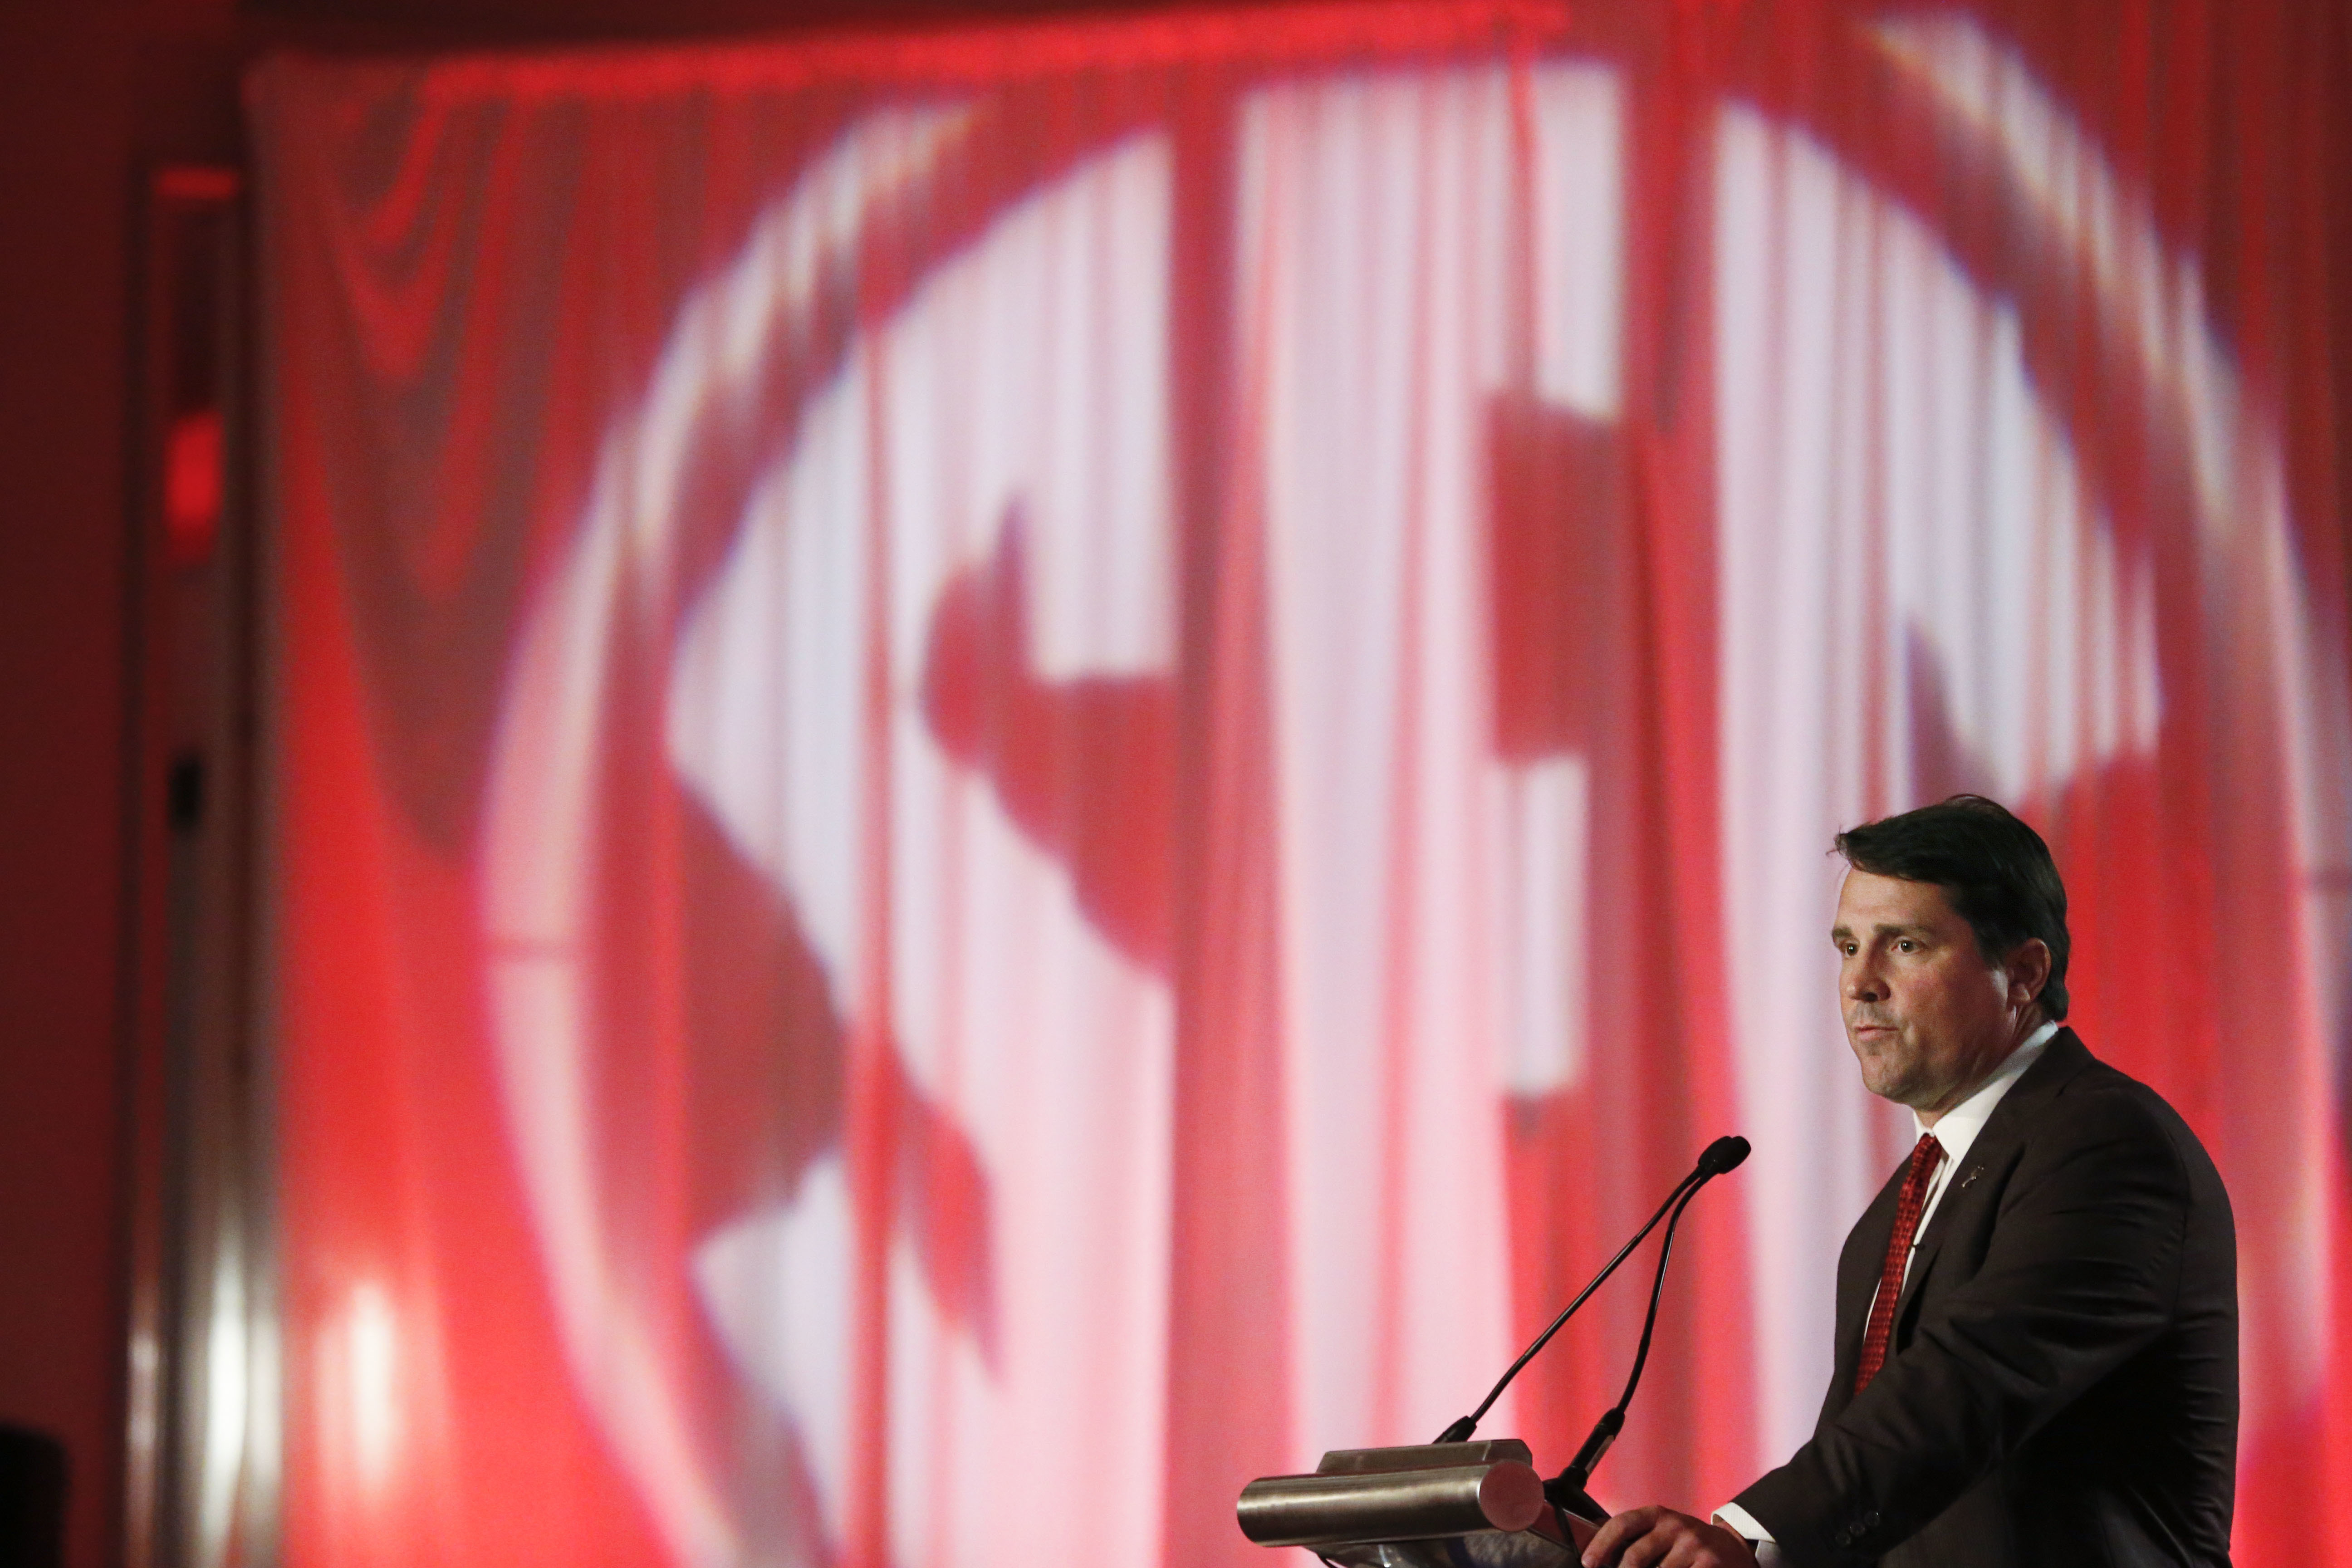 South Carolina coach Will Muschamp speaks to the media at the Southeastern Conference NCAA college football media days, Thursday, July 14, 2016, in Hoover, Ala. (AP Photo/Brynn Anderson)